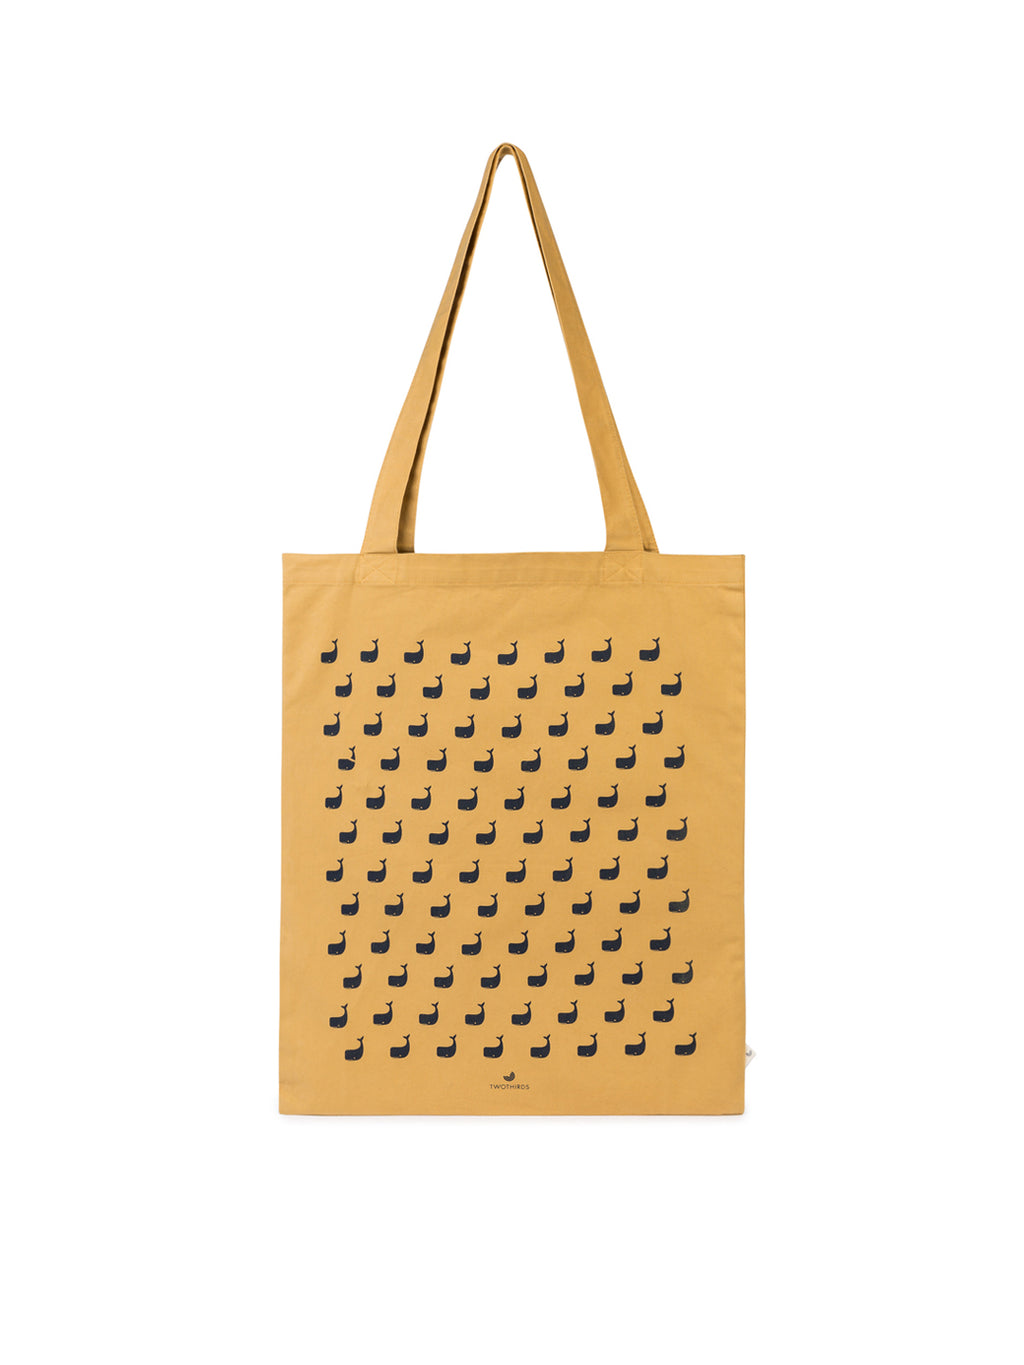 Tote Bag - Hainan Allover Honey